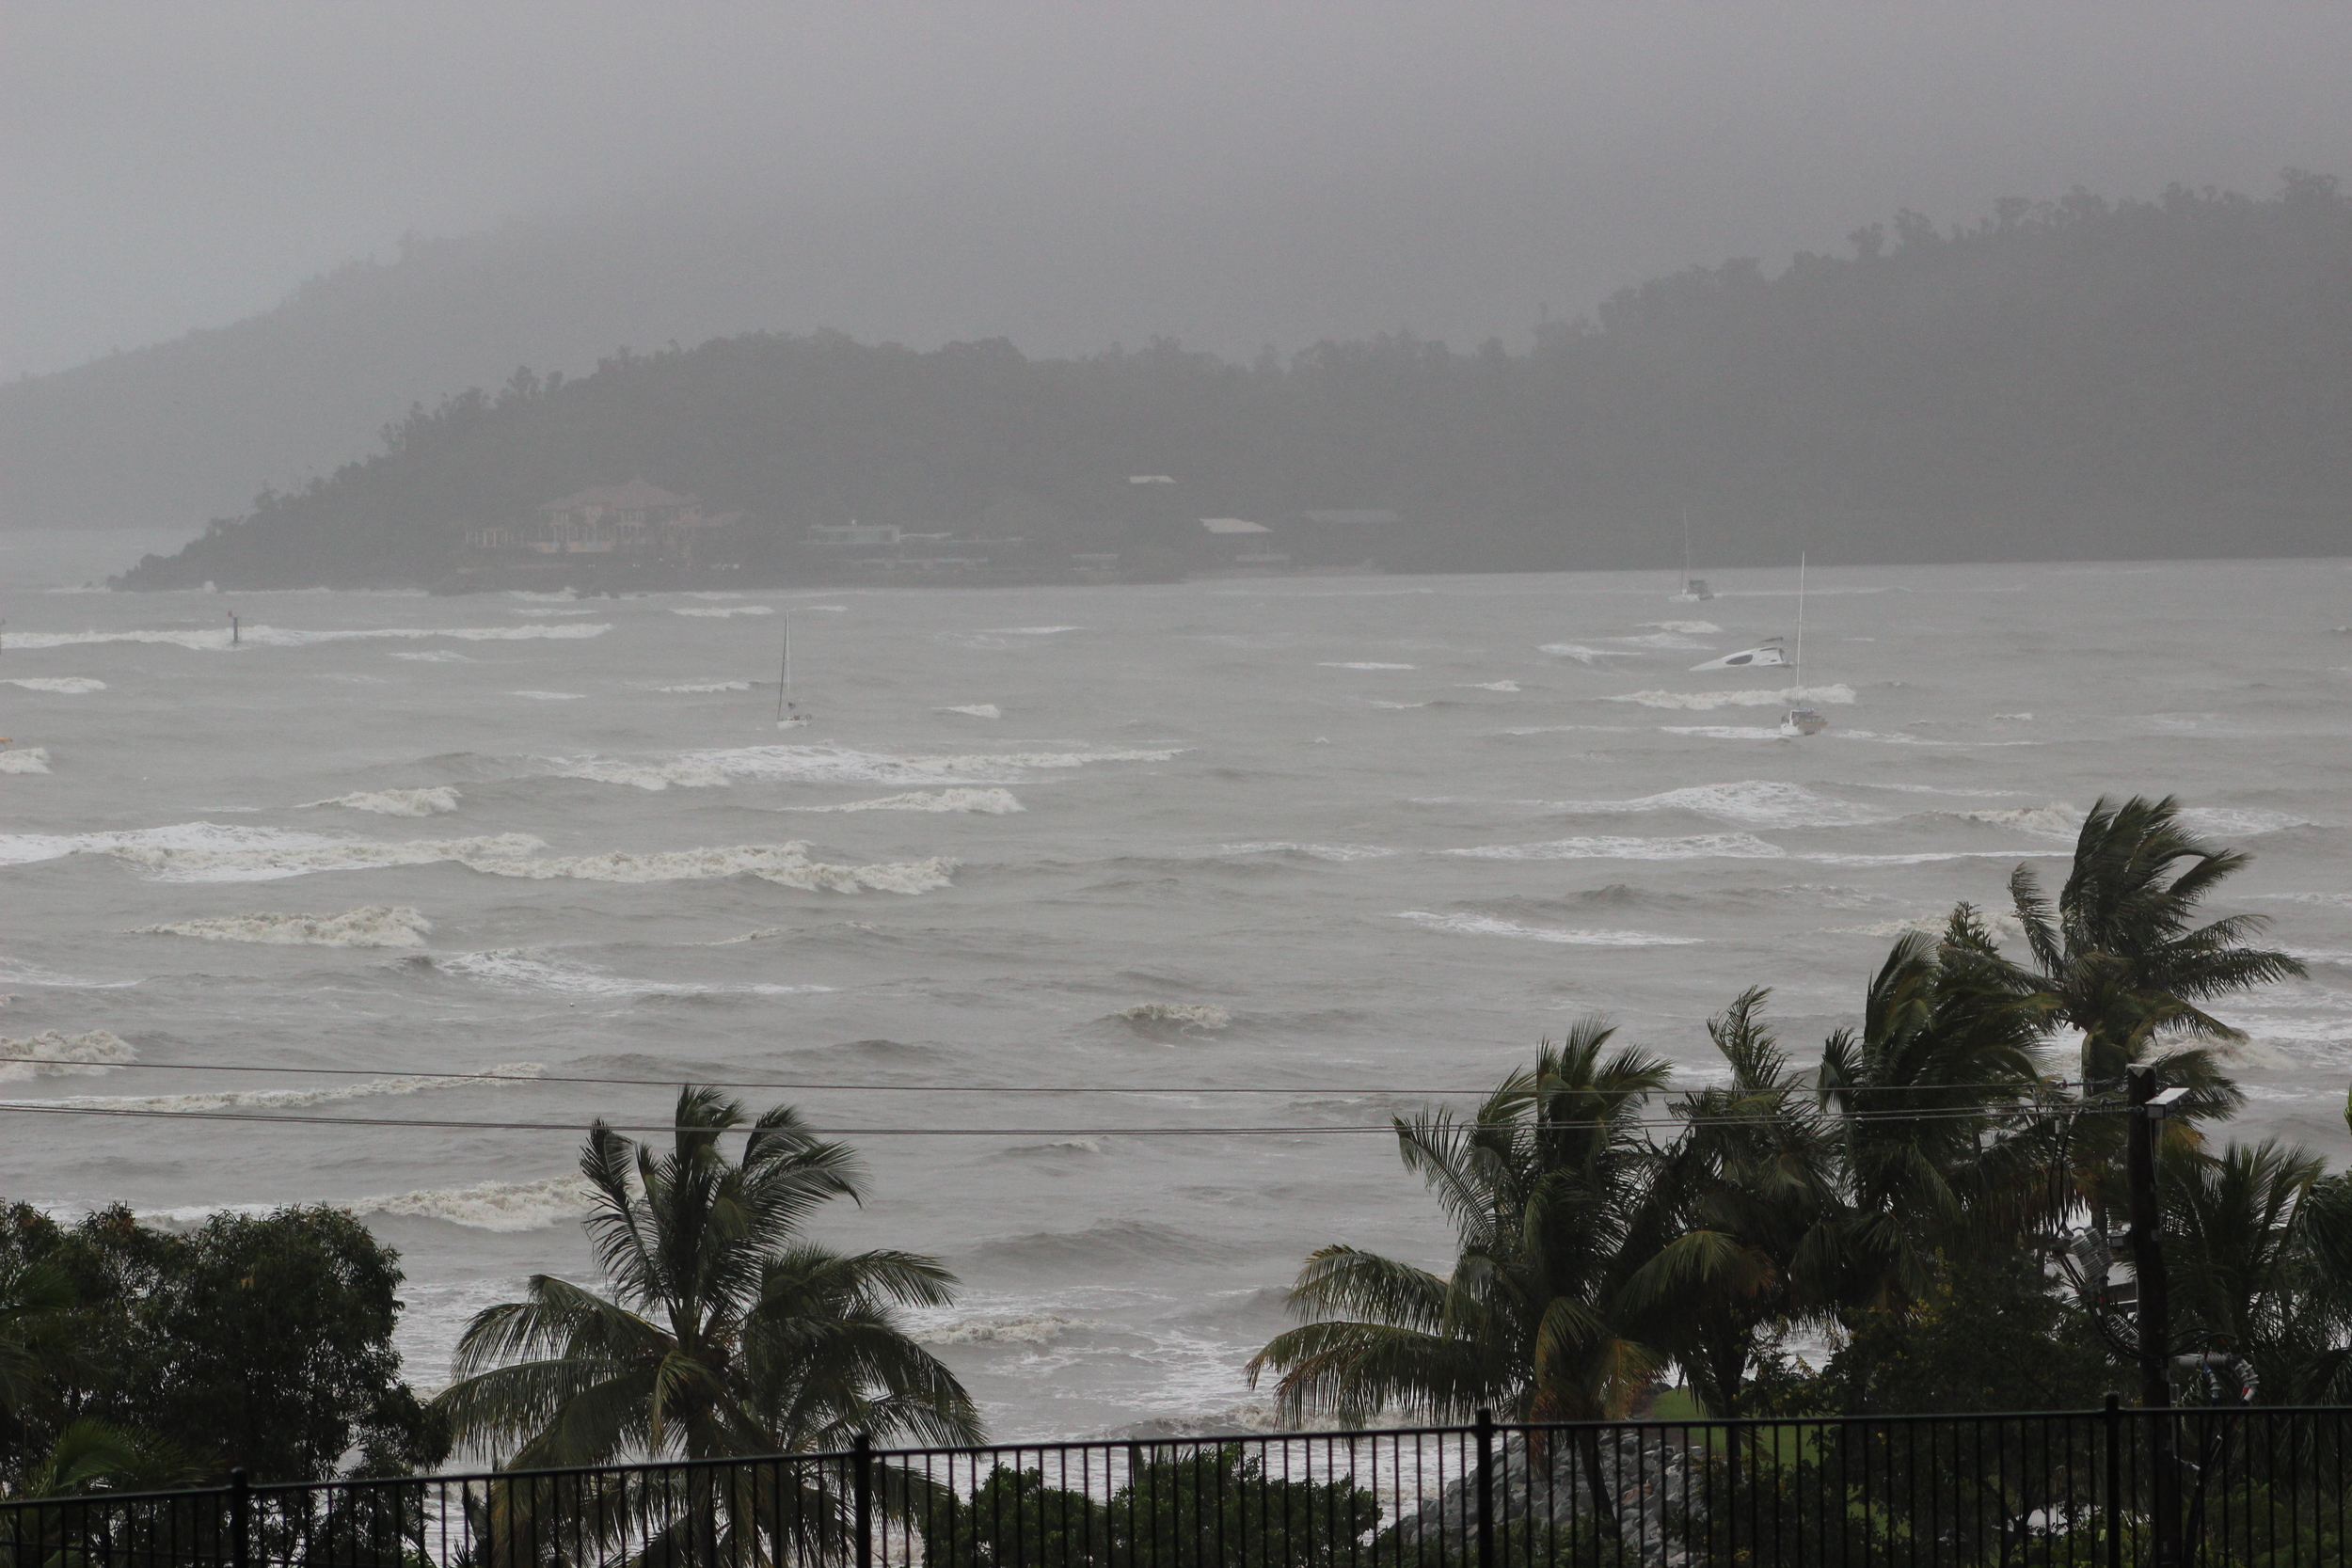 2nd Day - During the cyclone.